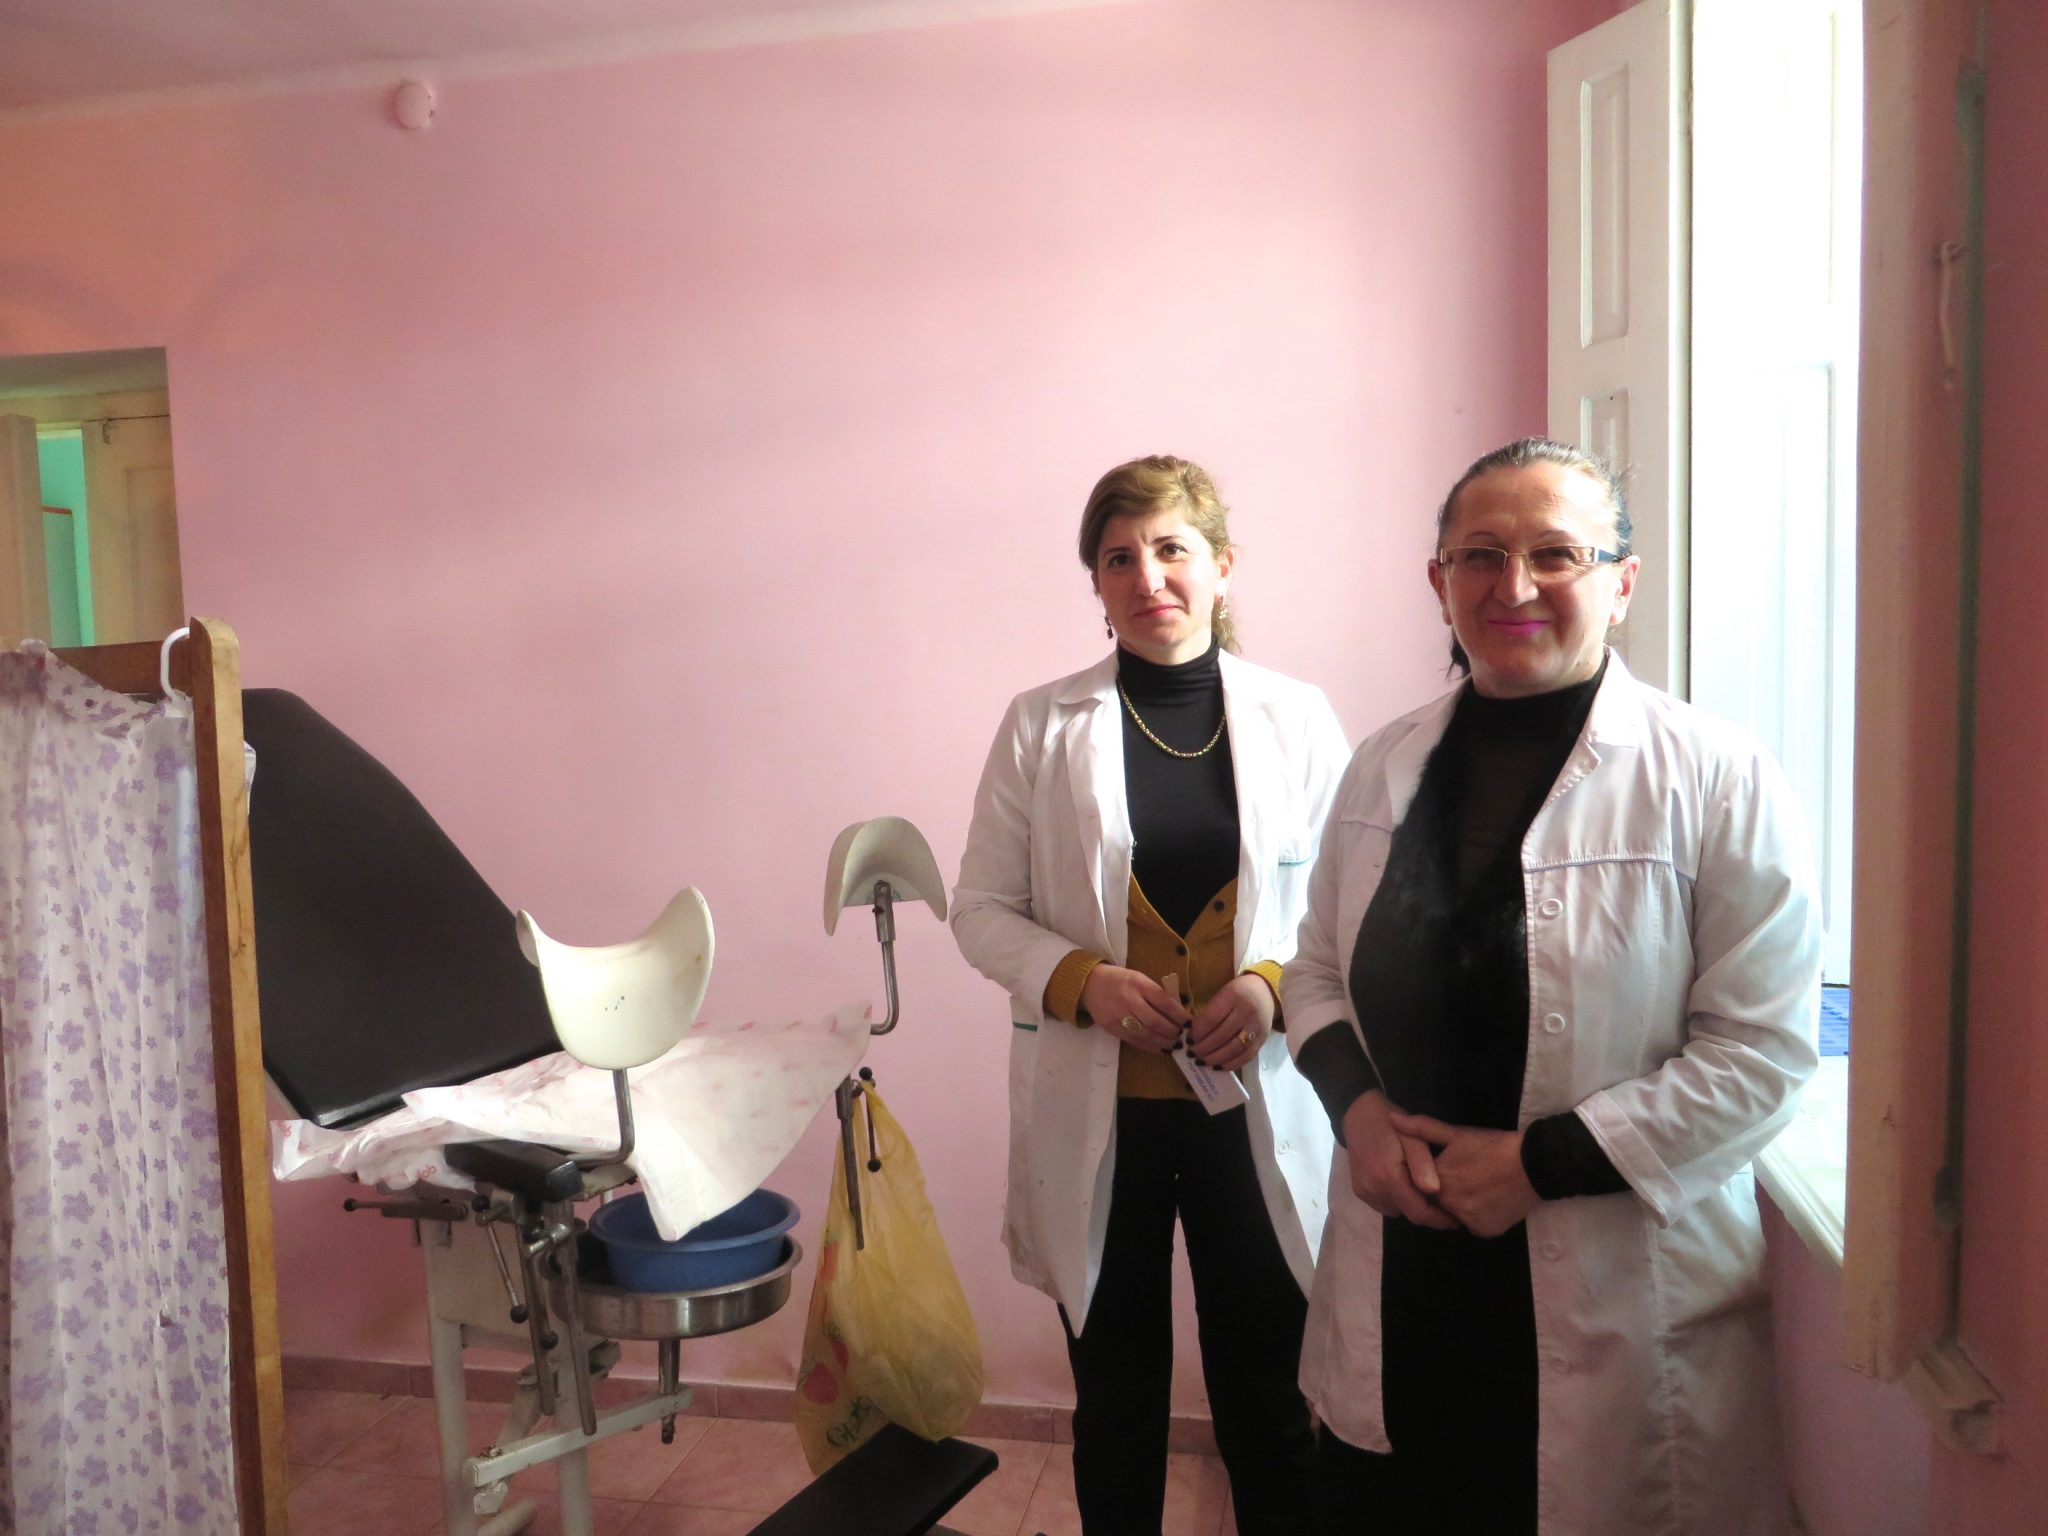 Every year, nurse Maia Mamulashvili and gynaecologist Manana Vengrjhanovich of Georgia's Democratic Women's Organization provide hundreds of women and girls with free screenings and care. Photo: Emma Söderström / Kvinna till Kvinna.